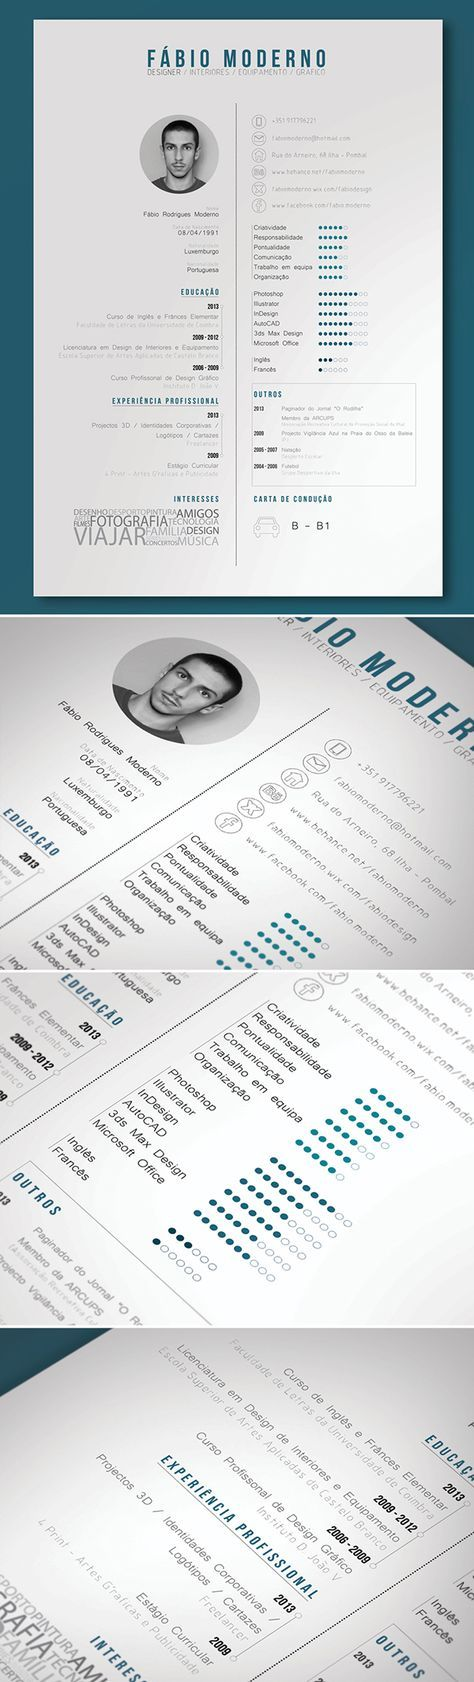 Chronological Resume Samples%0A Curriculum Vitae on Behance